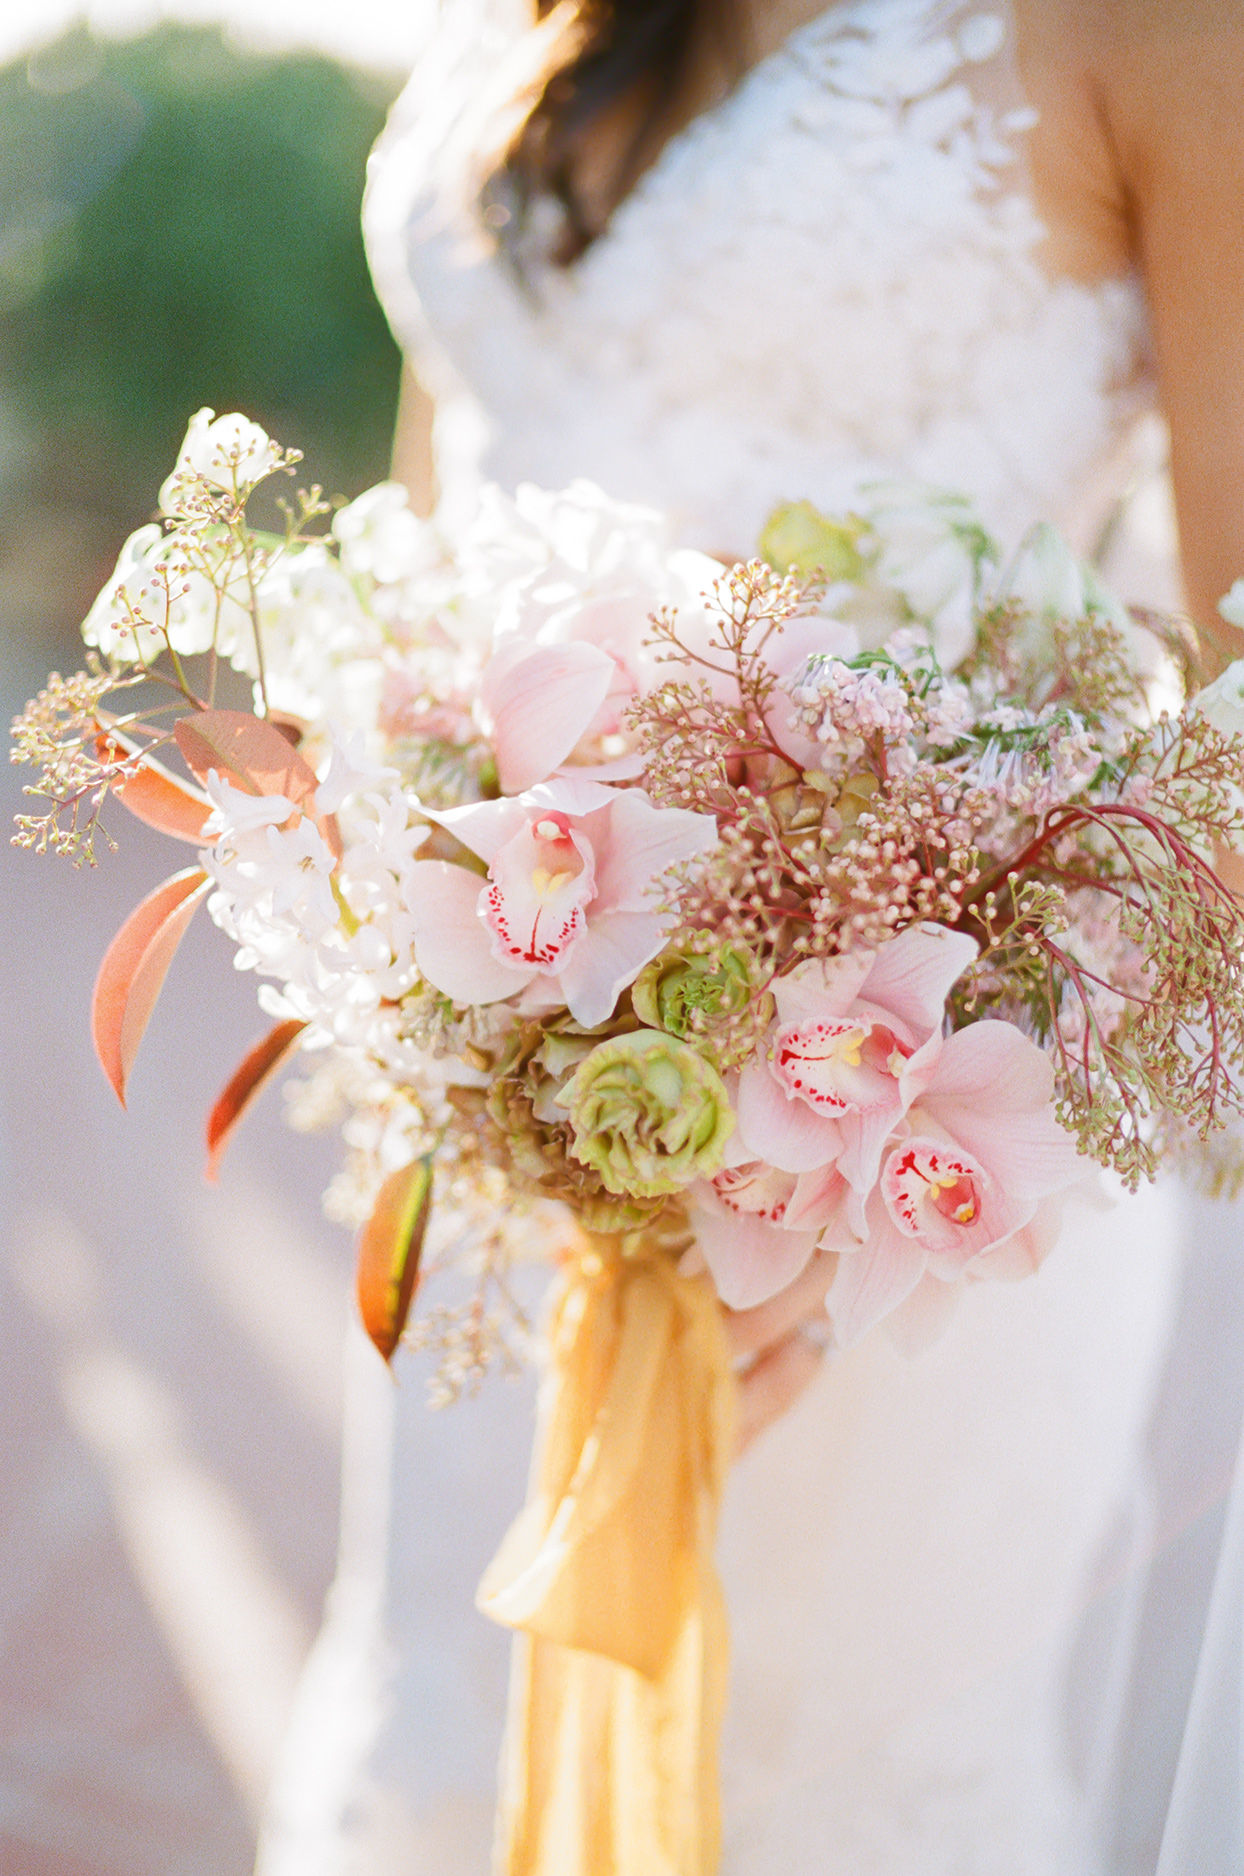 loose and organic wedding bouquet of blooms in shades of white, cream, blush, and yellow